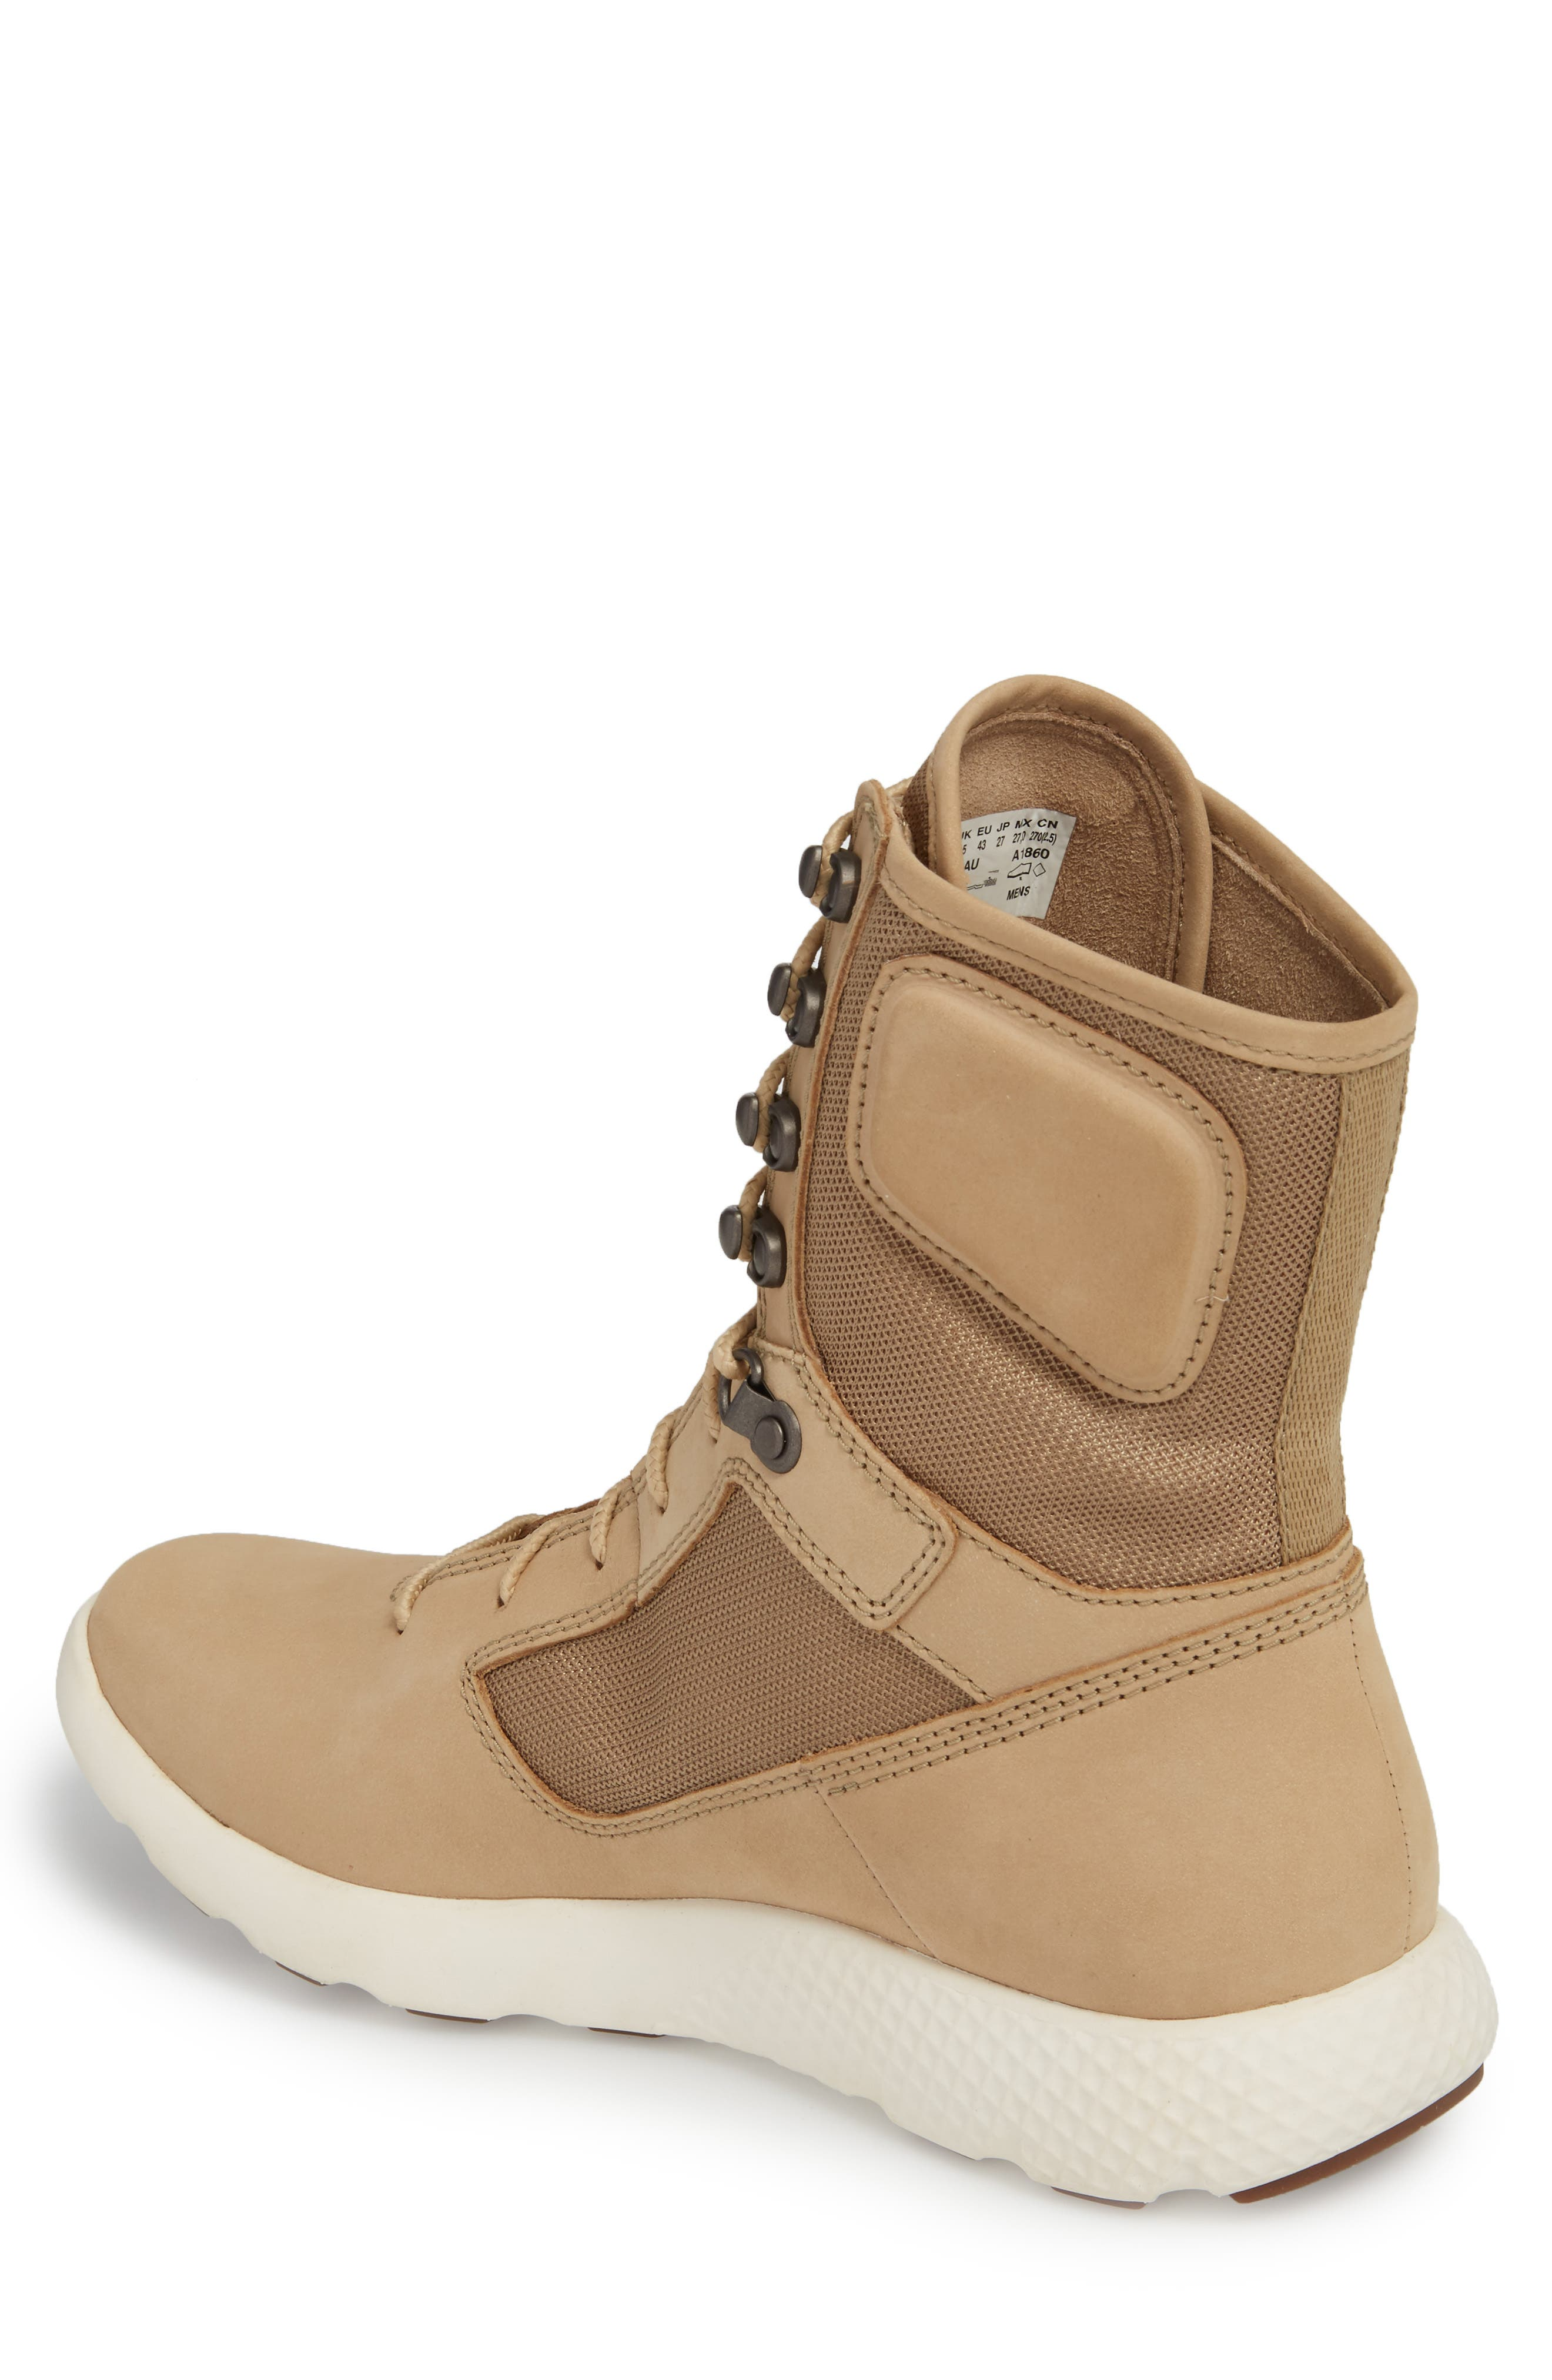 FlyRoam Tactical Boot,                             Alternate thumbnail 2, color,                             Cornstalk Nubuck Leather